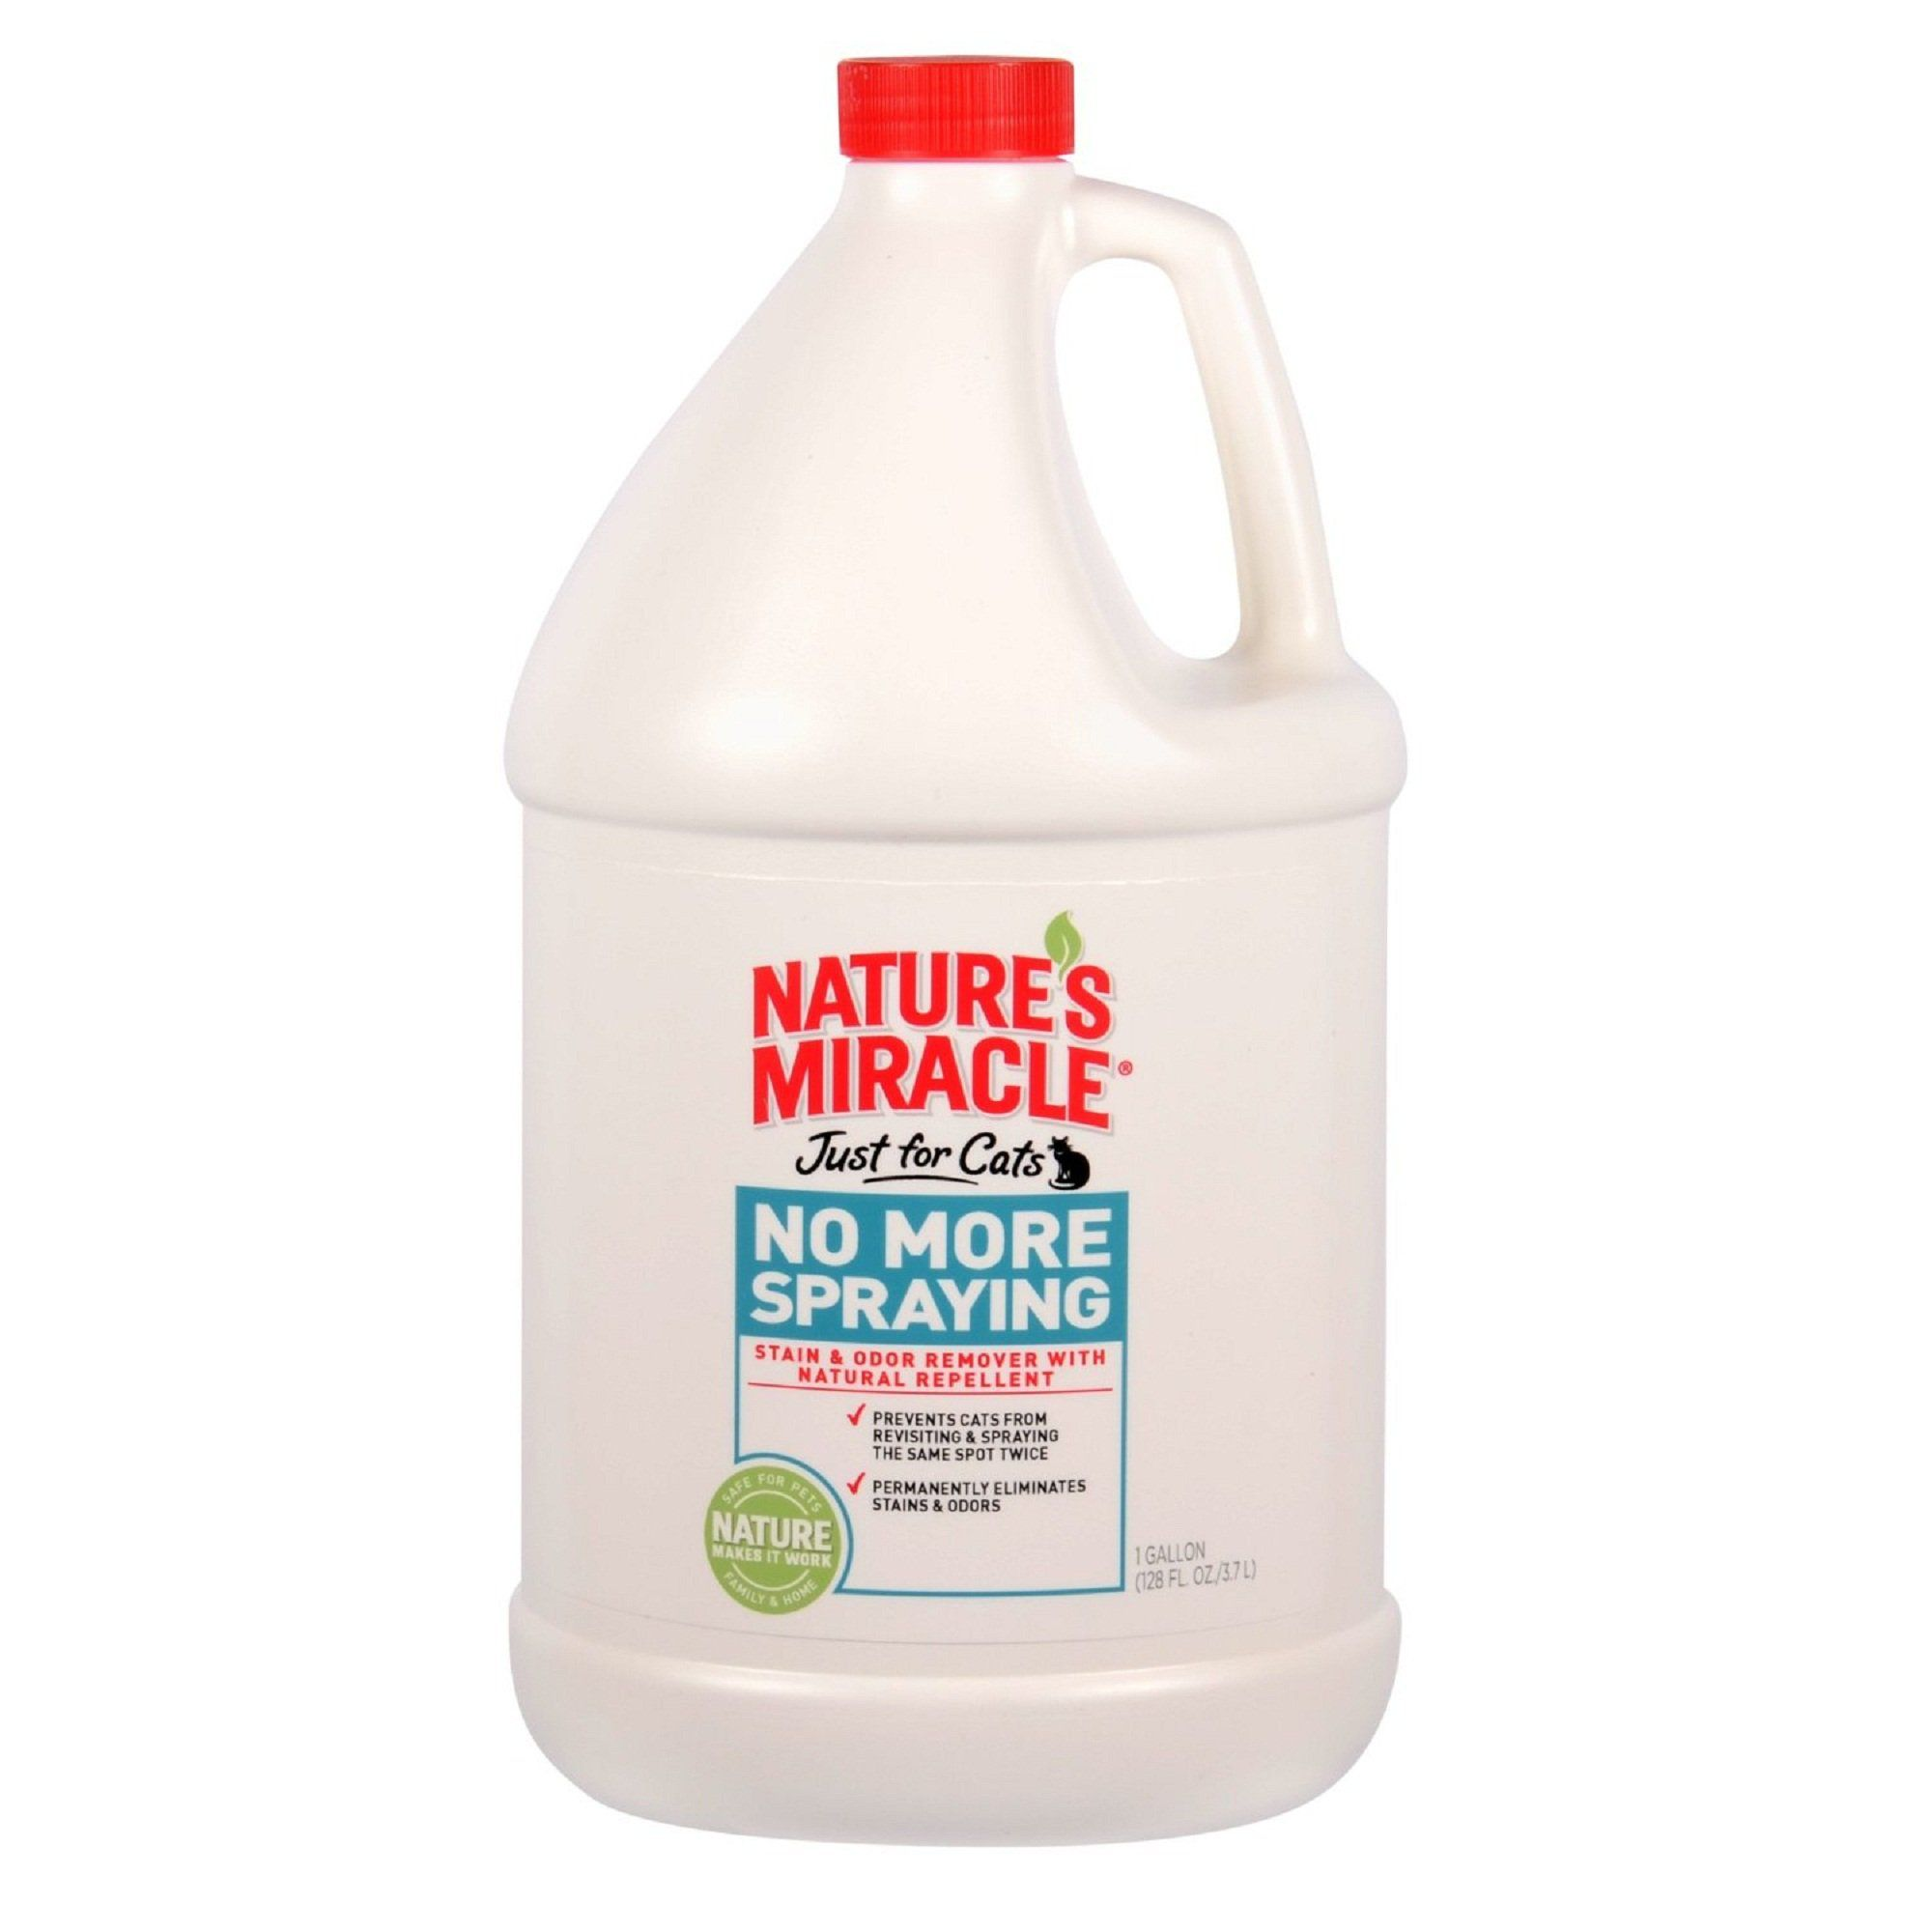 "Nature""s Miracle No More Spraying Stain and Odor Remover"